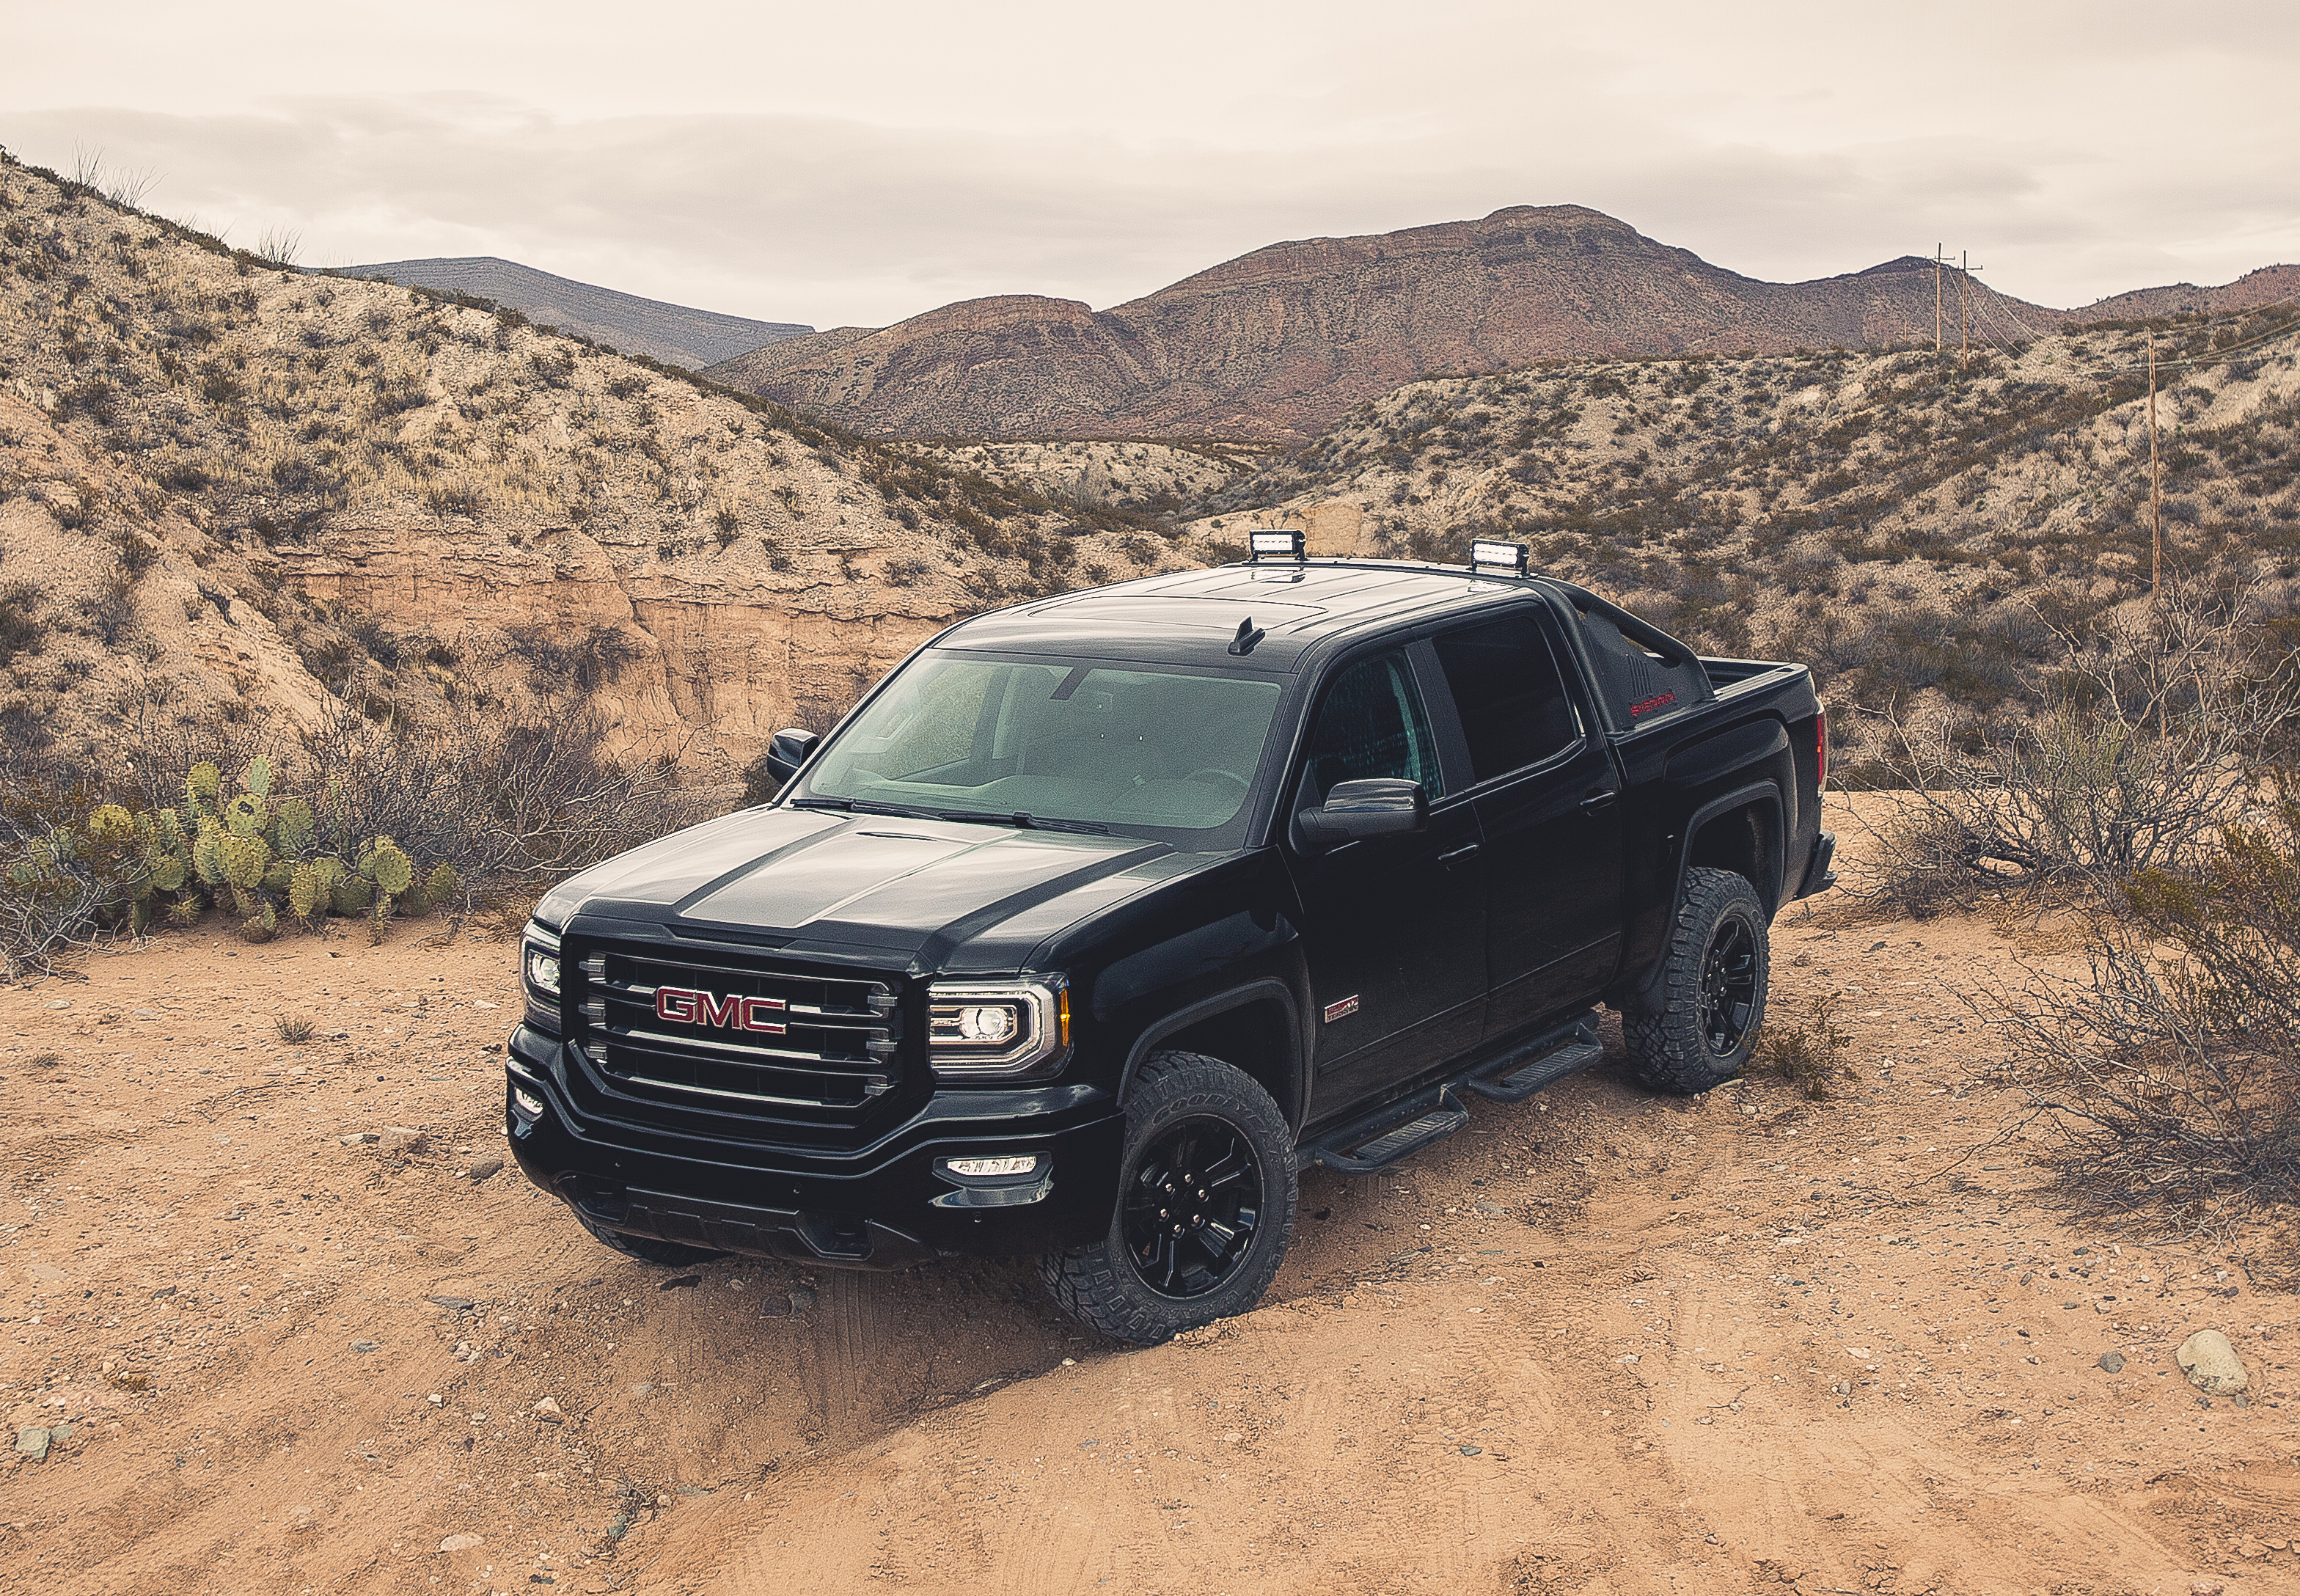 news gmc denali us may starts company at info media me content terrain dealer pages en detail near